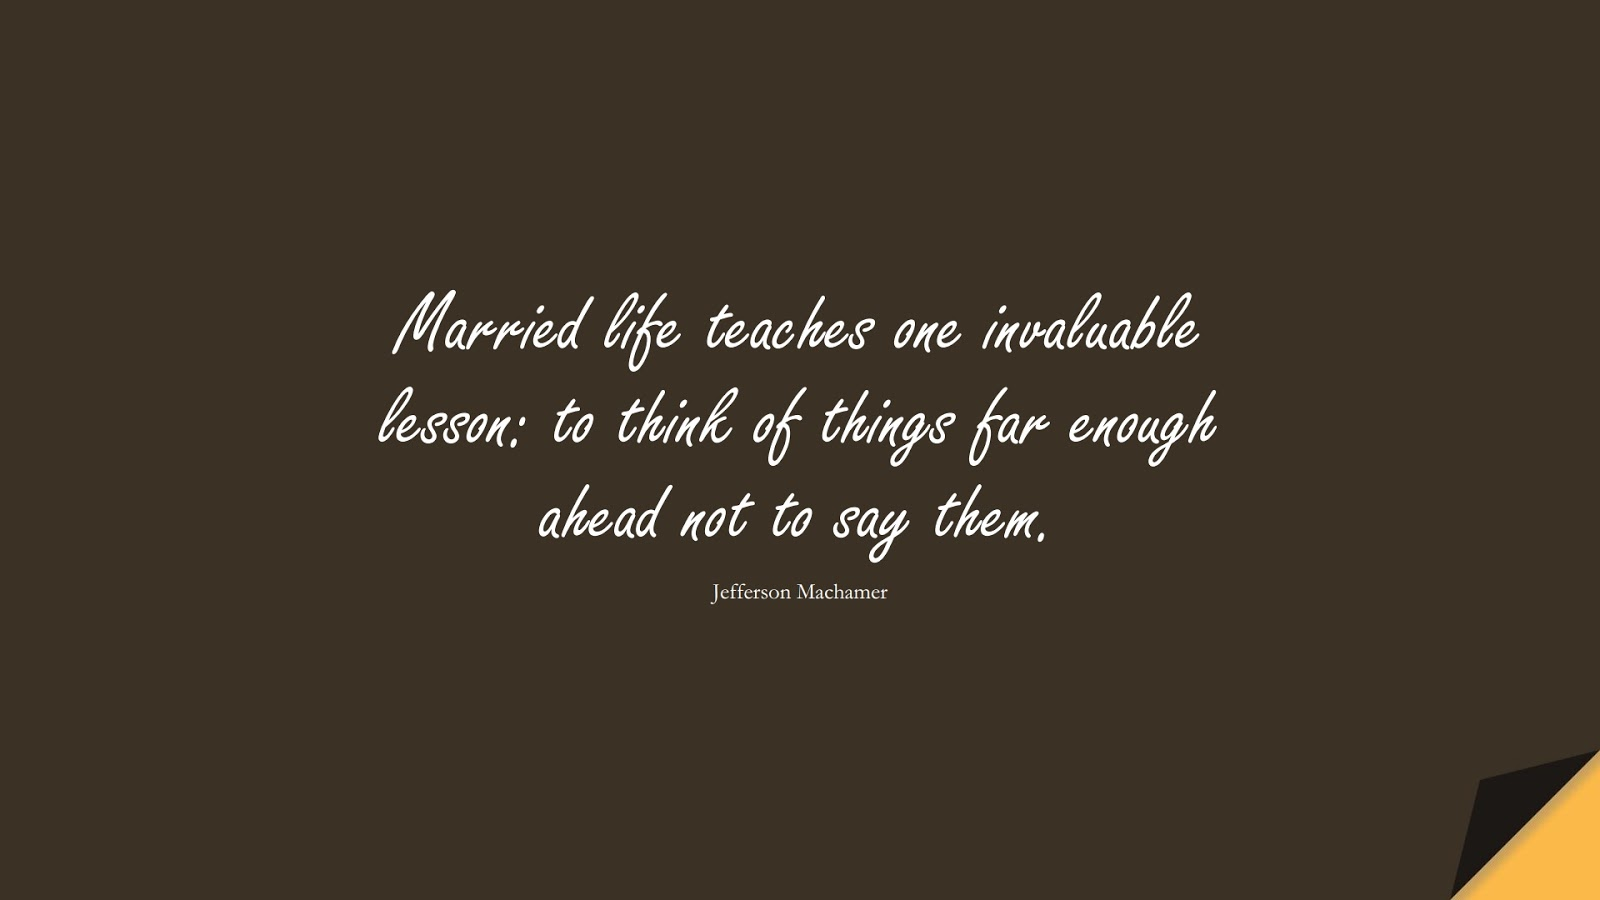 Married life teaches one invaluable lesson: to think of things far enough ahead not to say them. (Jefferson Machamer);  #RelationshipQuotes